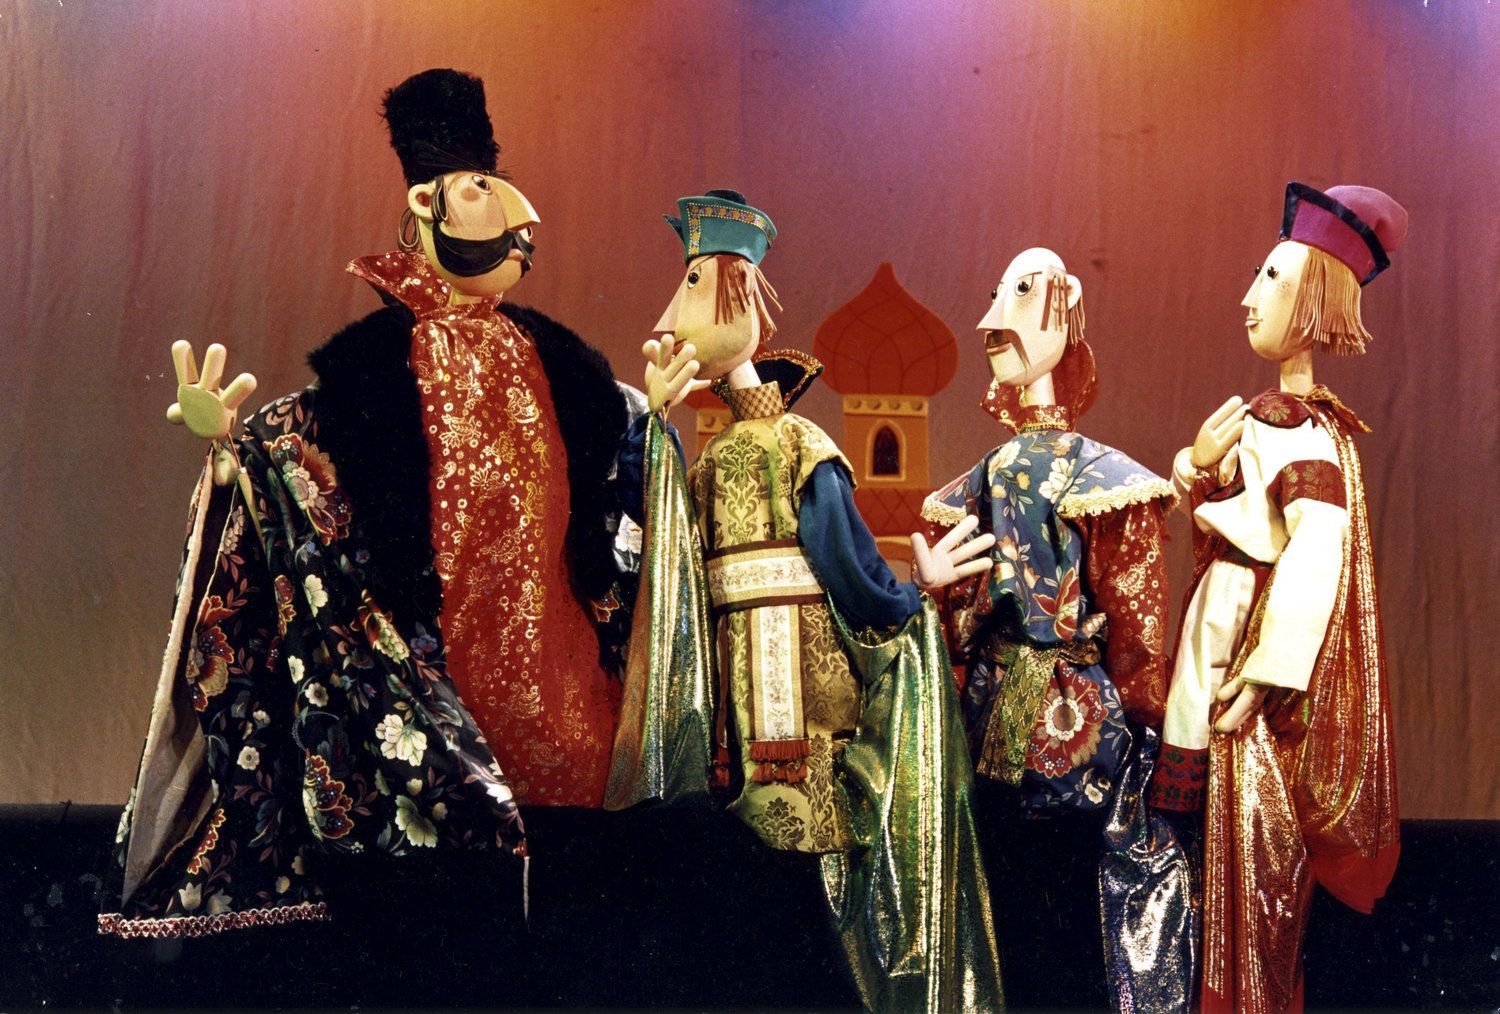 Tales from the Land of the <em><em>Fire</em>bird</em> (1989) par le Cannon Hill Puppet Theatre (Birmingham, Royaume-Uni), mise en scène : Simon Painter, conception et fabrication : John M. Blundall. Marionnettes à tiges. Photo: John M. Blundall